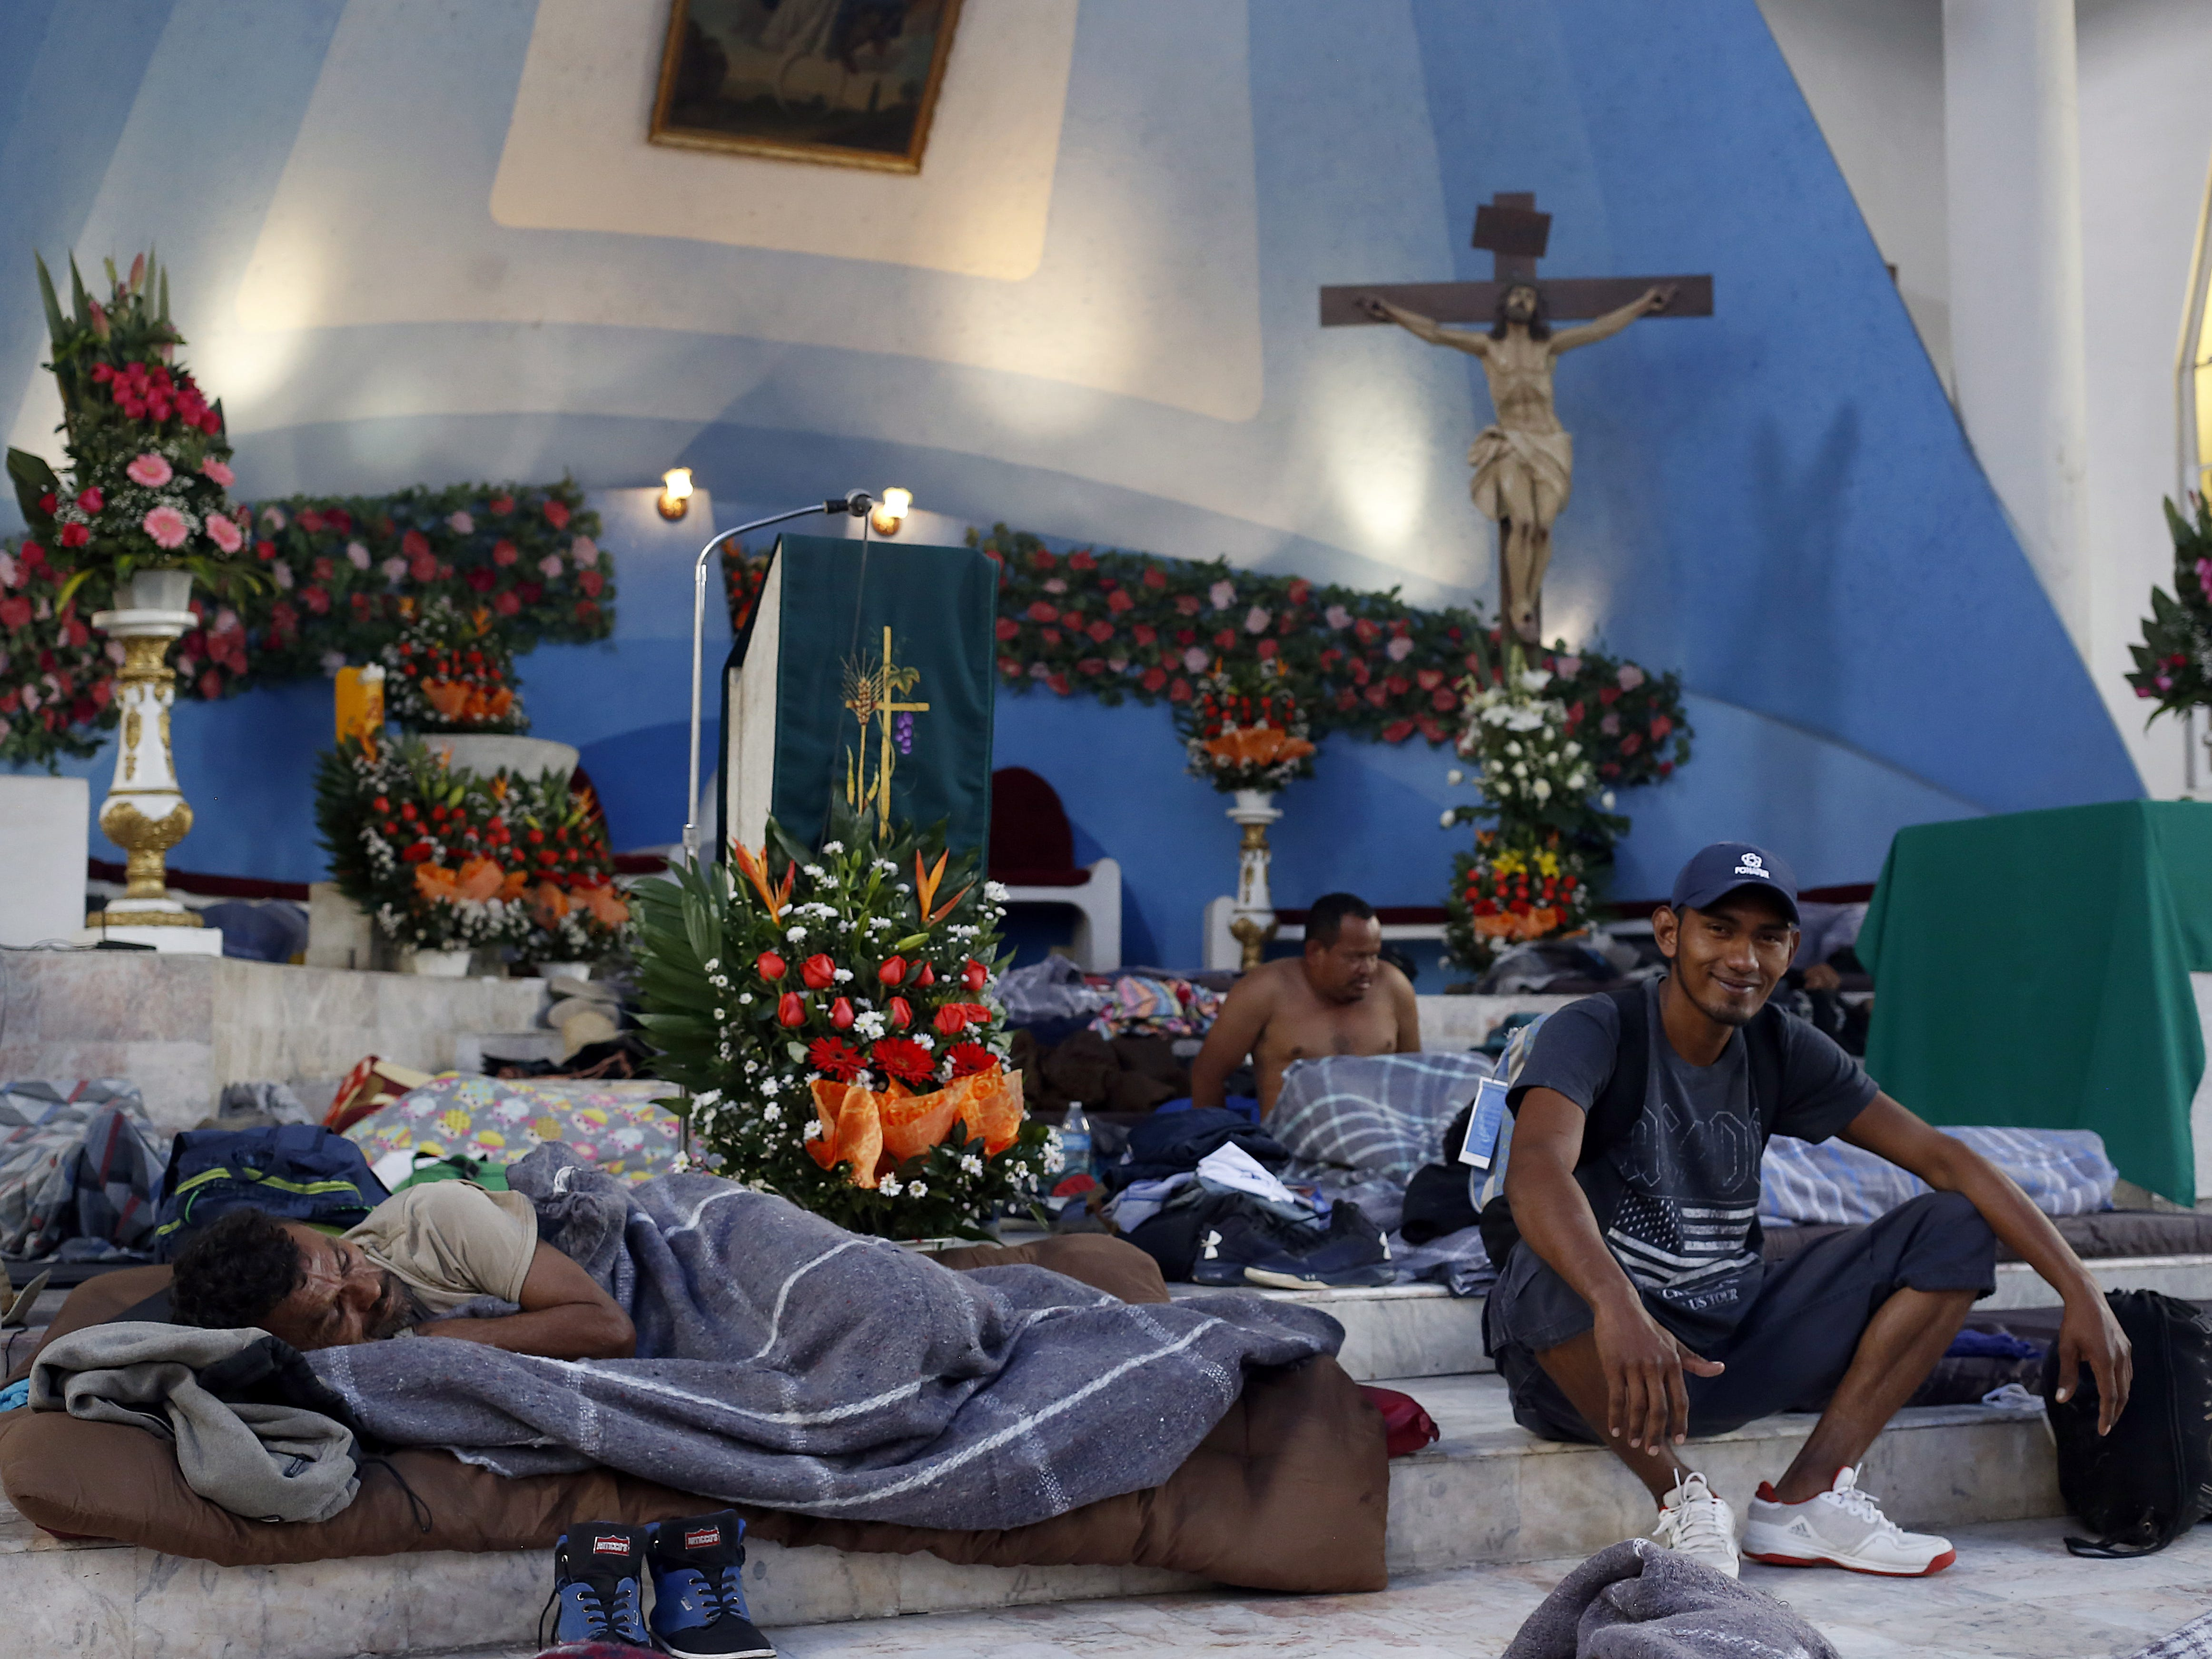 Members of the migrant caravan rest in a church upon their arrival in the city of Puebla, Mexico, Nov. 4, 2018.